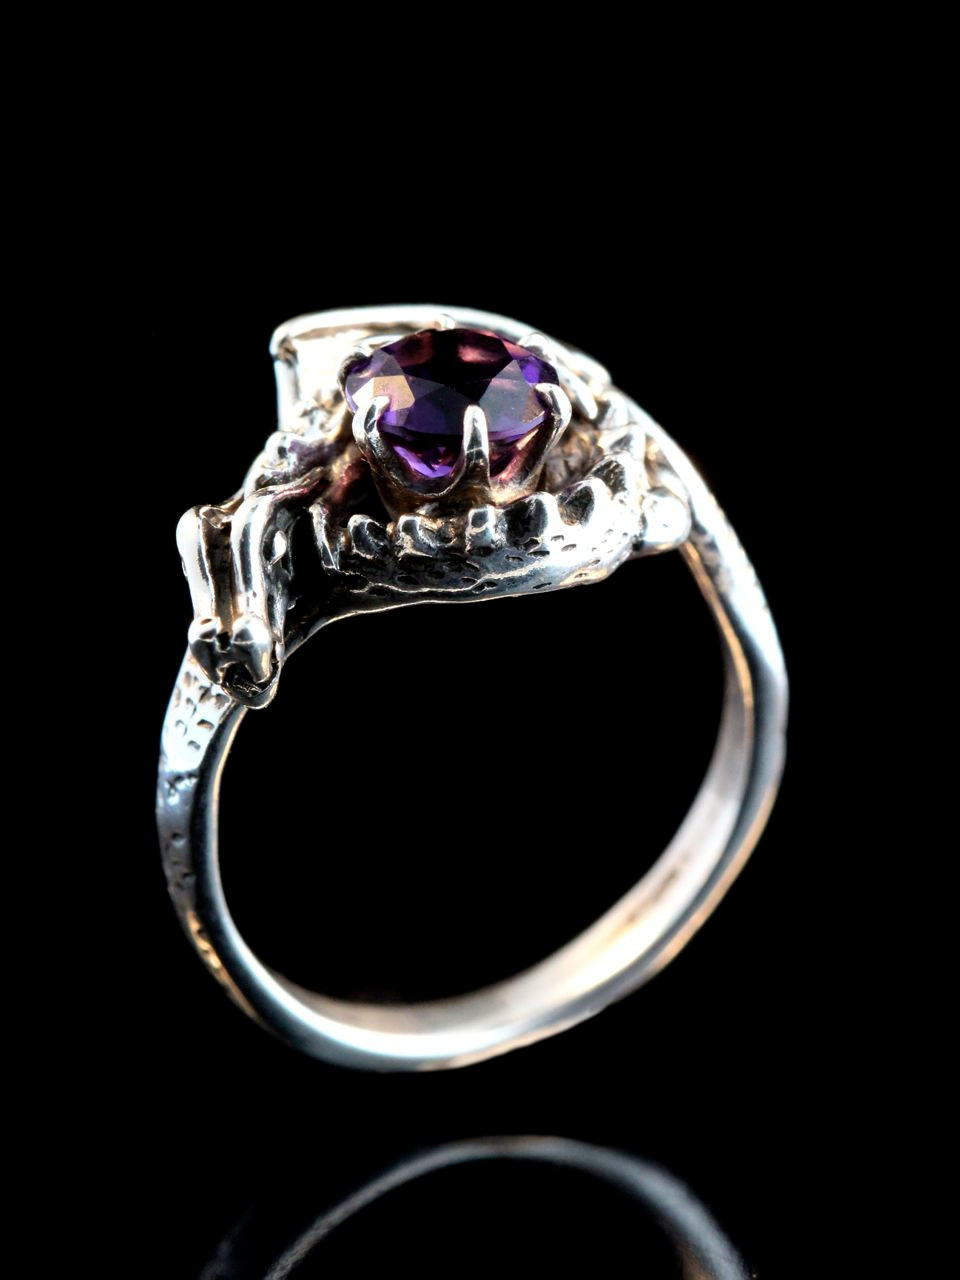 Curled Dragon Ring With Gemstone Jewelry